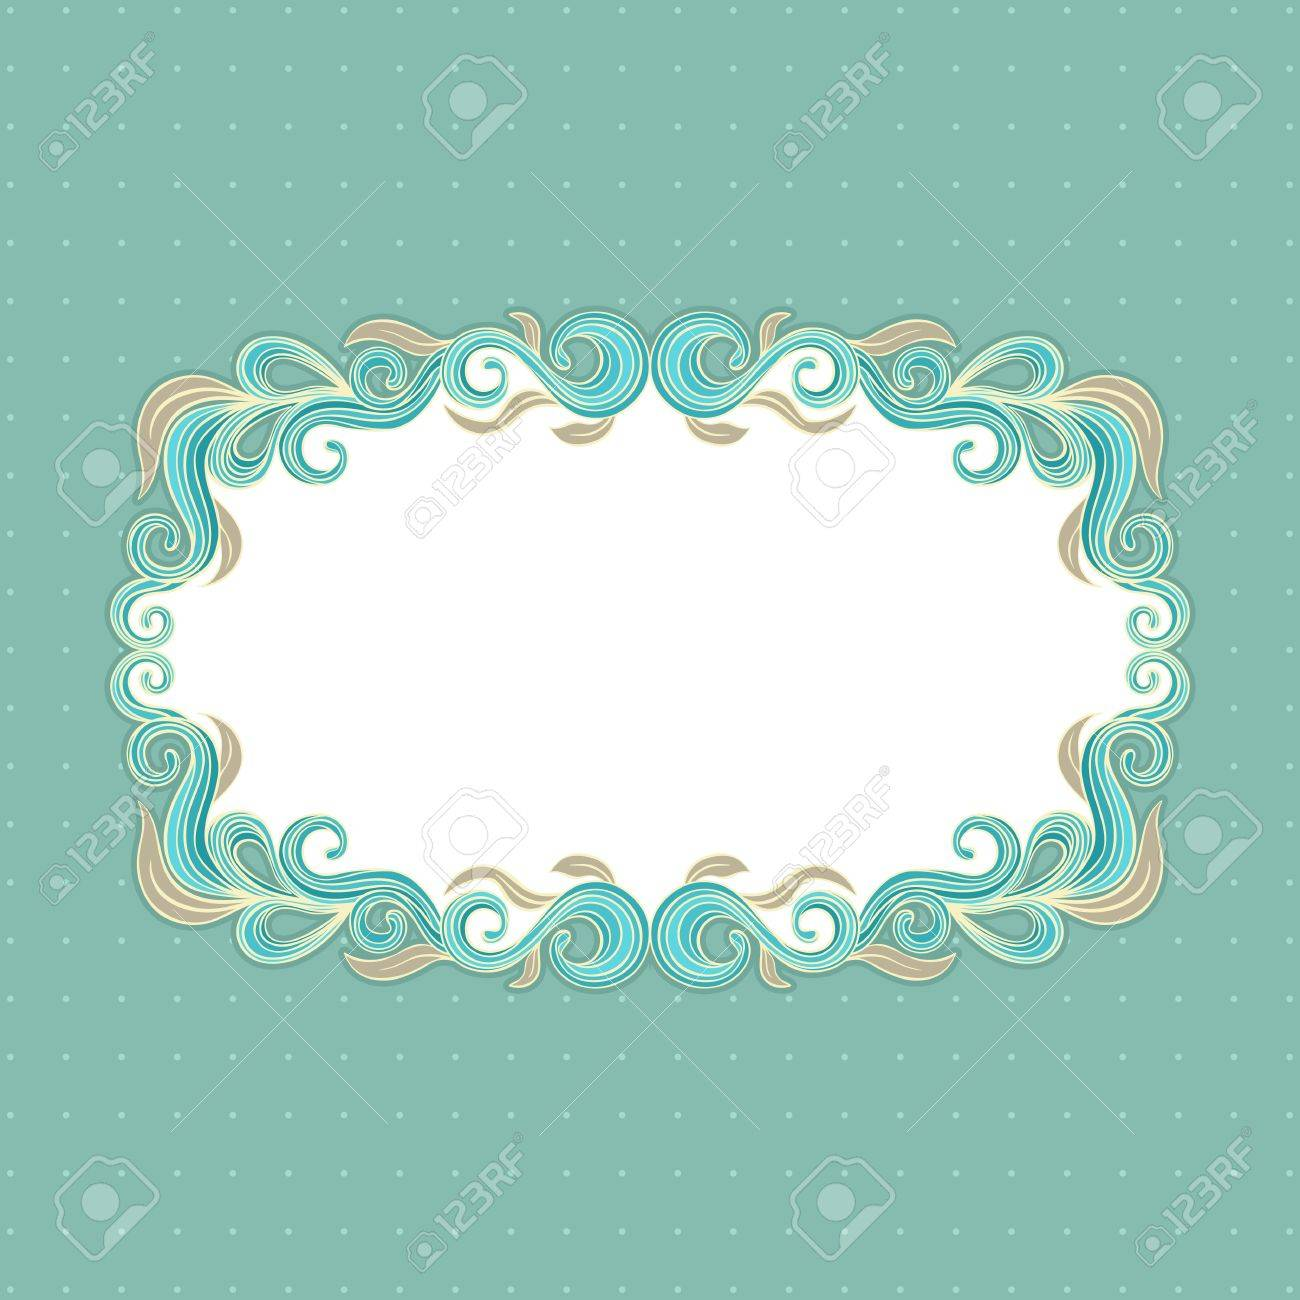 Beautiful floral frame on a turquoise background Stock Vector - 16917606